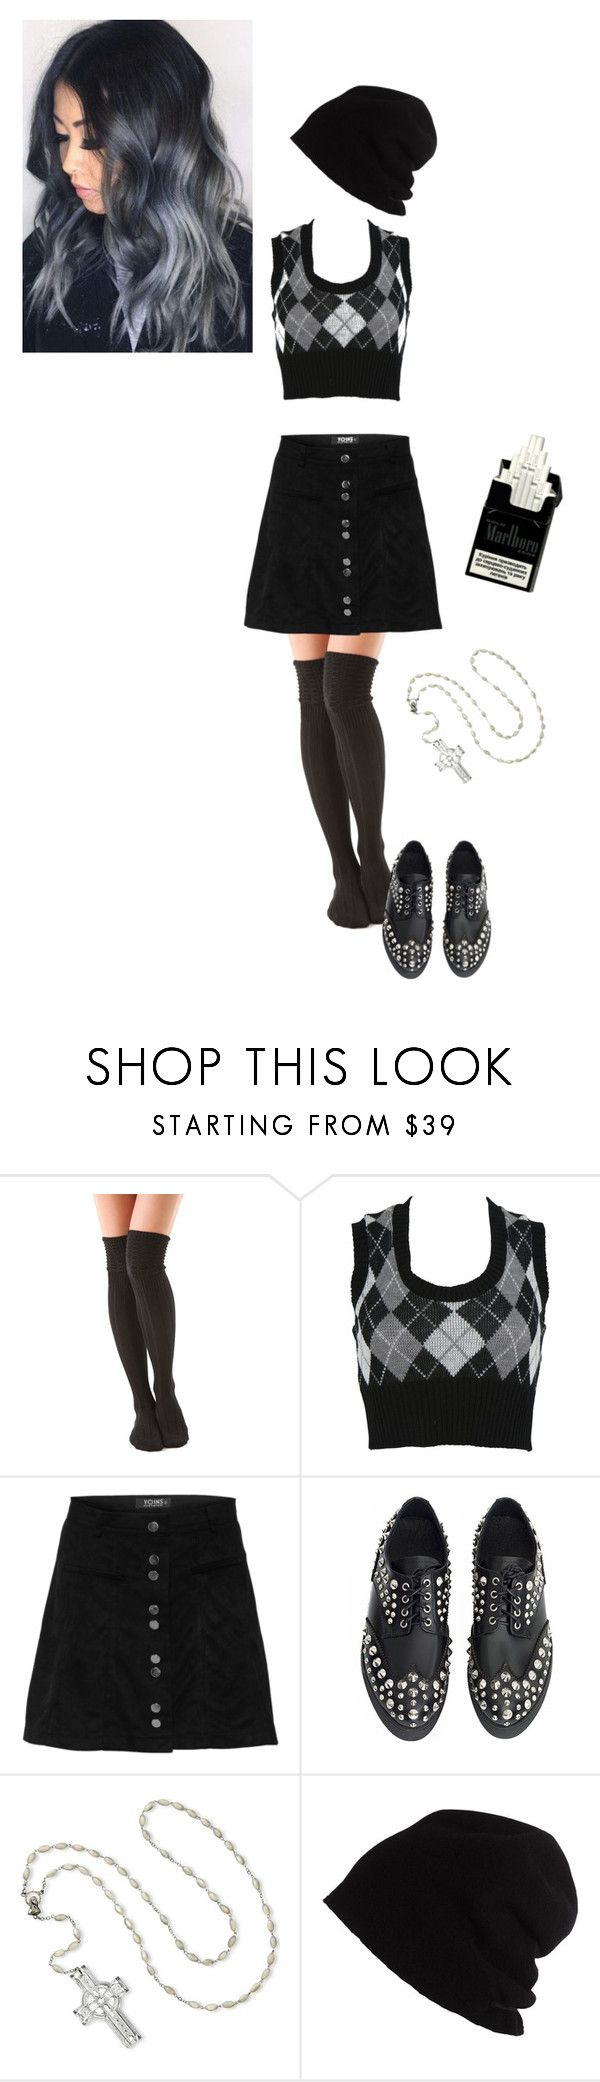 """""""Catholic School Girl"""" by reginalove ❤ liked on Polyvore featuring Falke, Charlotte Russe, Waterford and SCHA"""